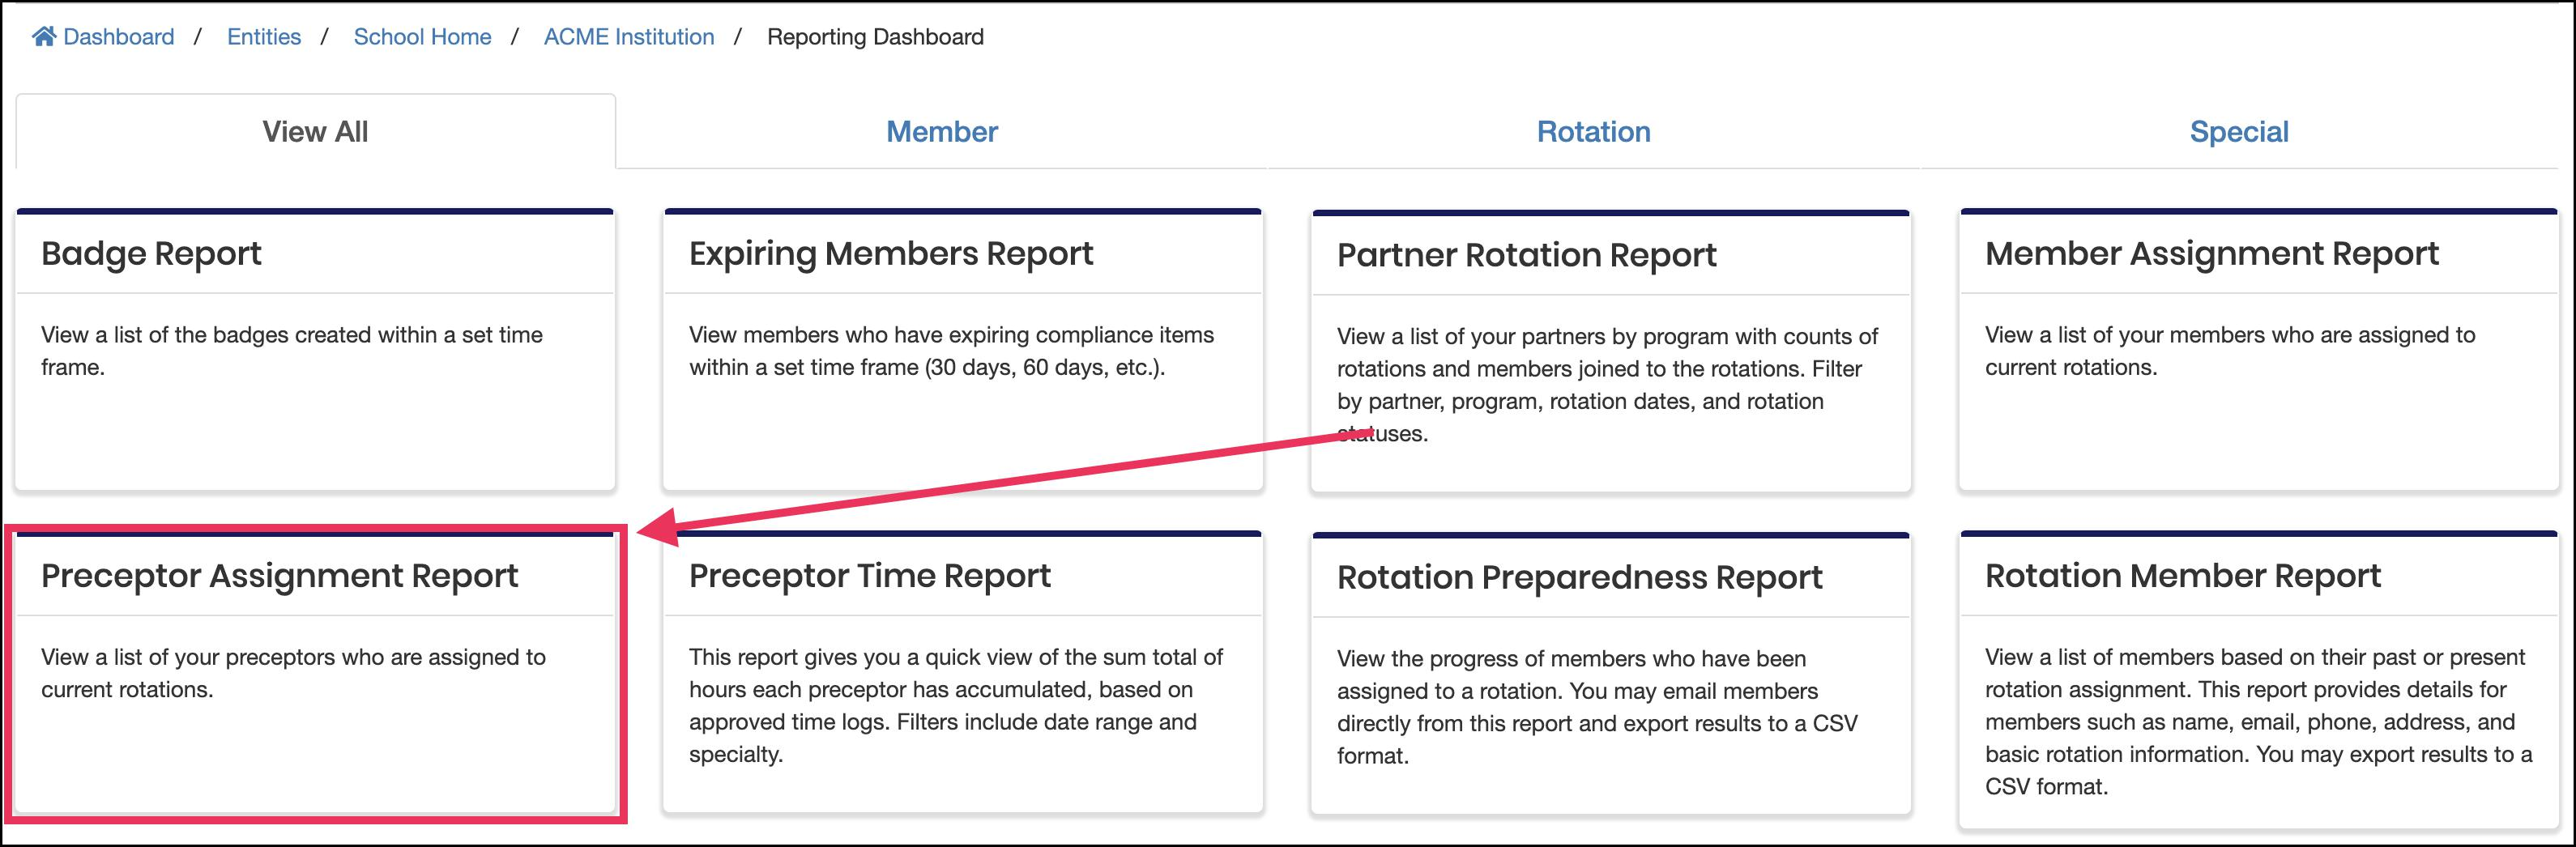 reporting dashboard page pointing to Preceptor Assignment Report tile